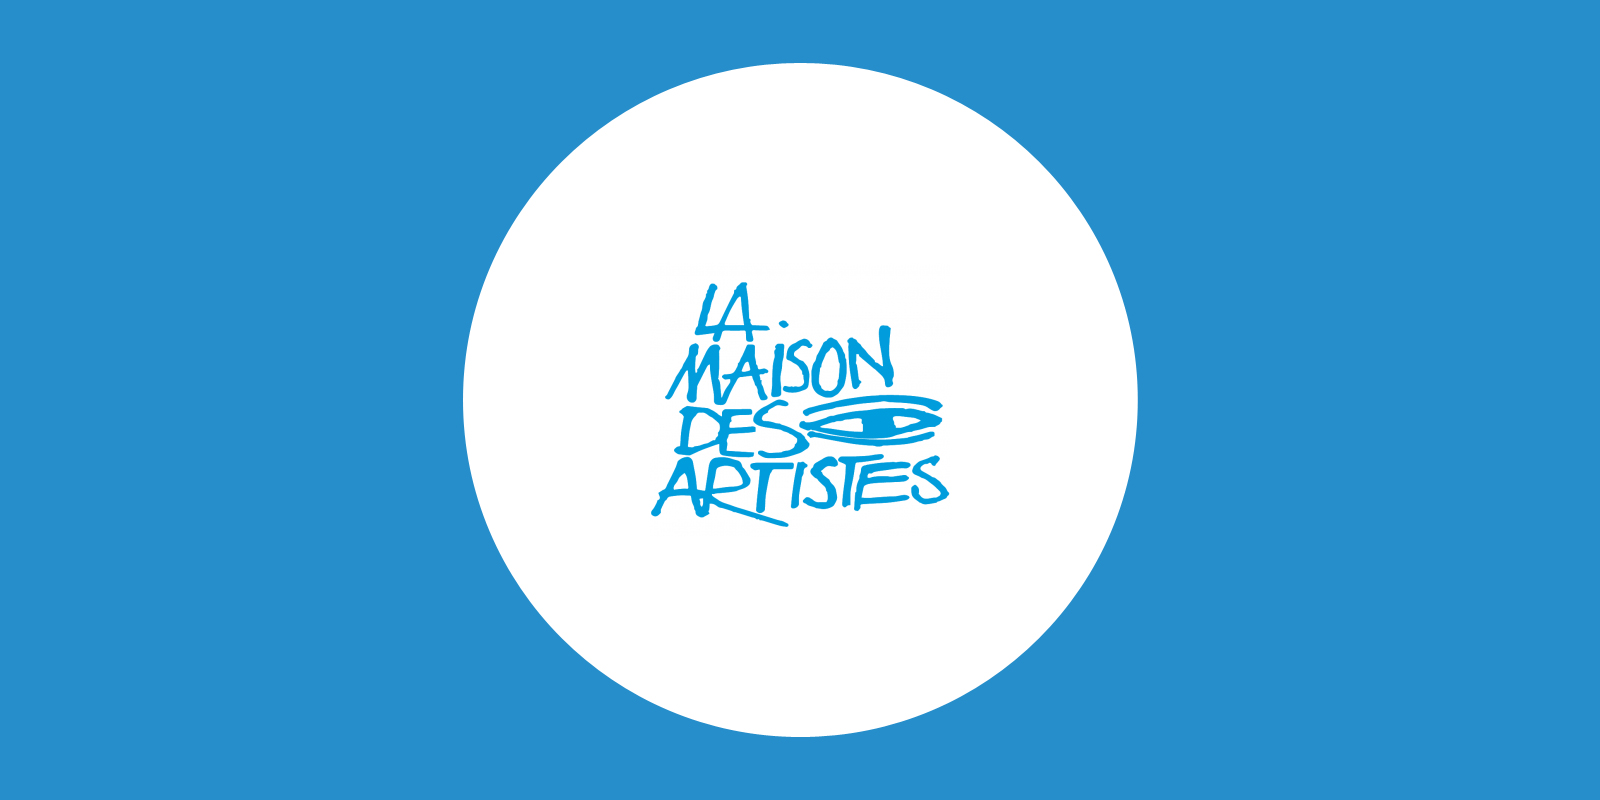 affiliation maison des artistes ventana blog